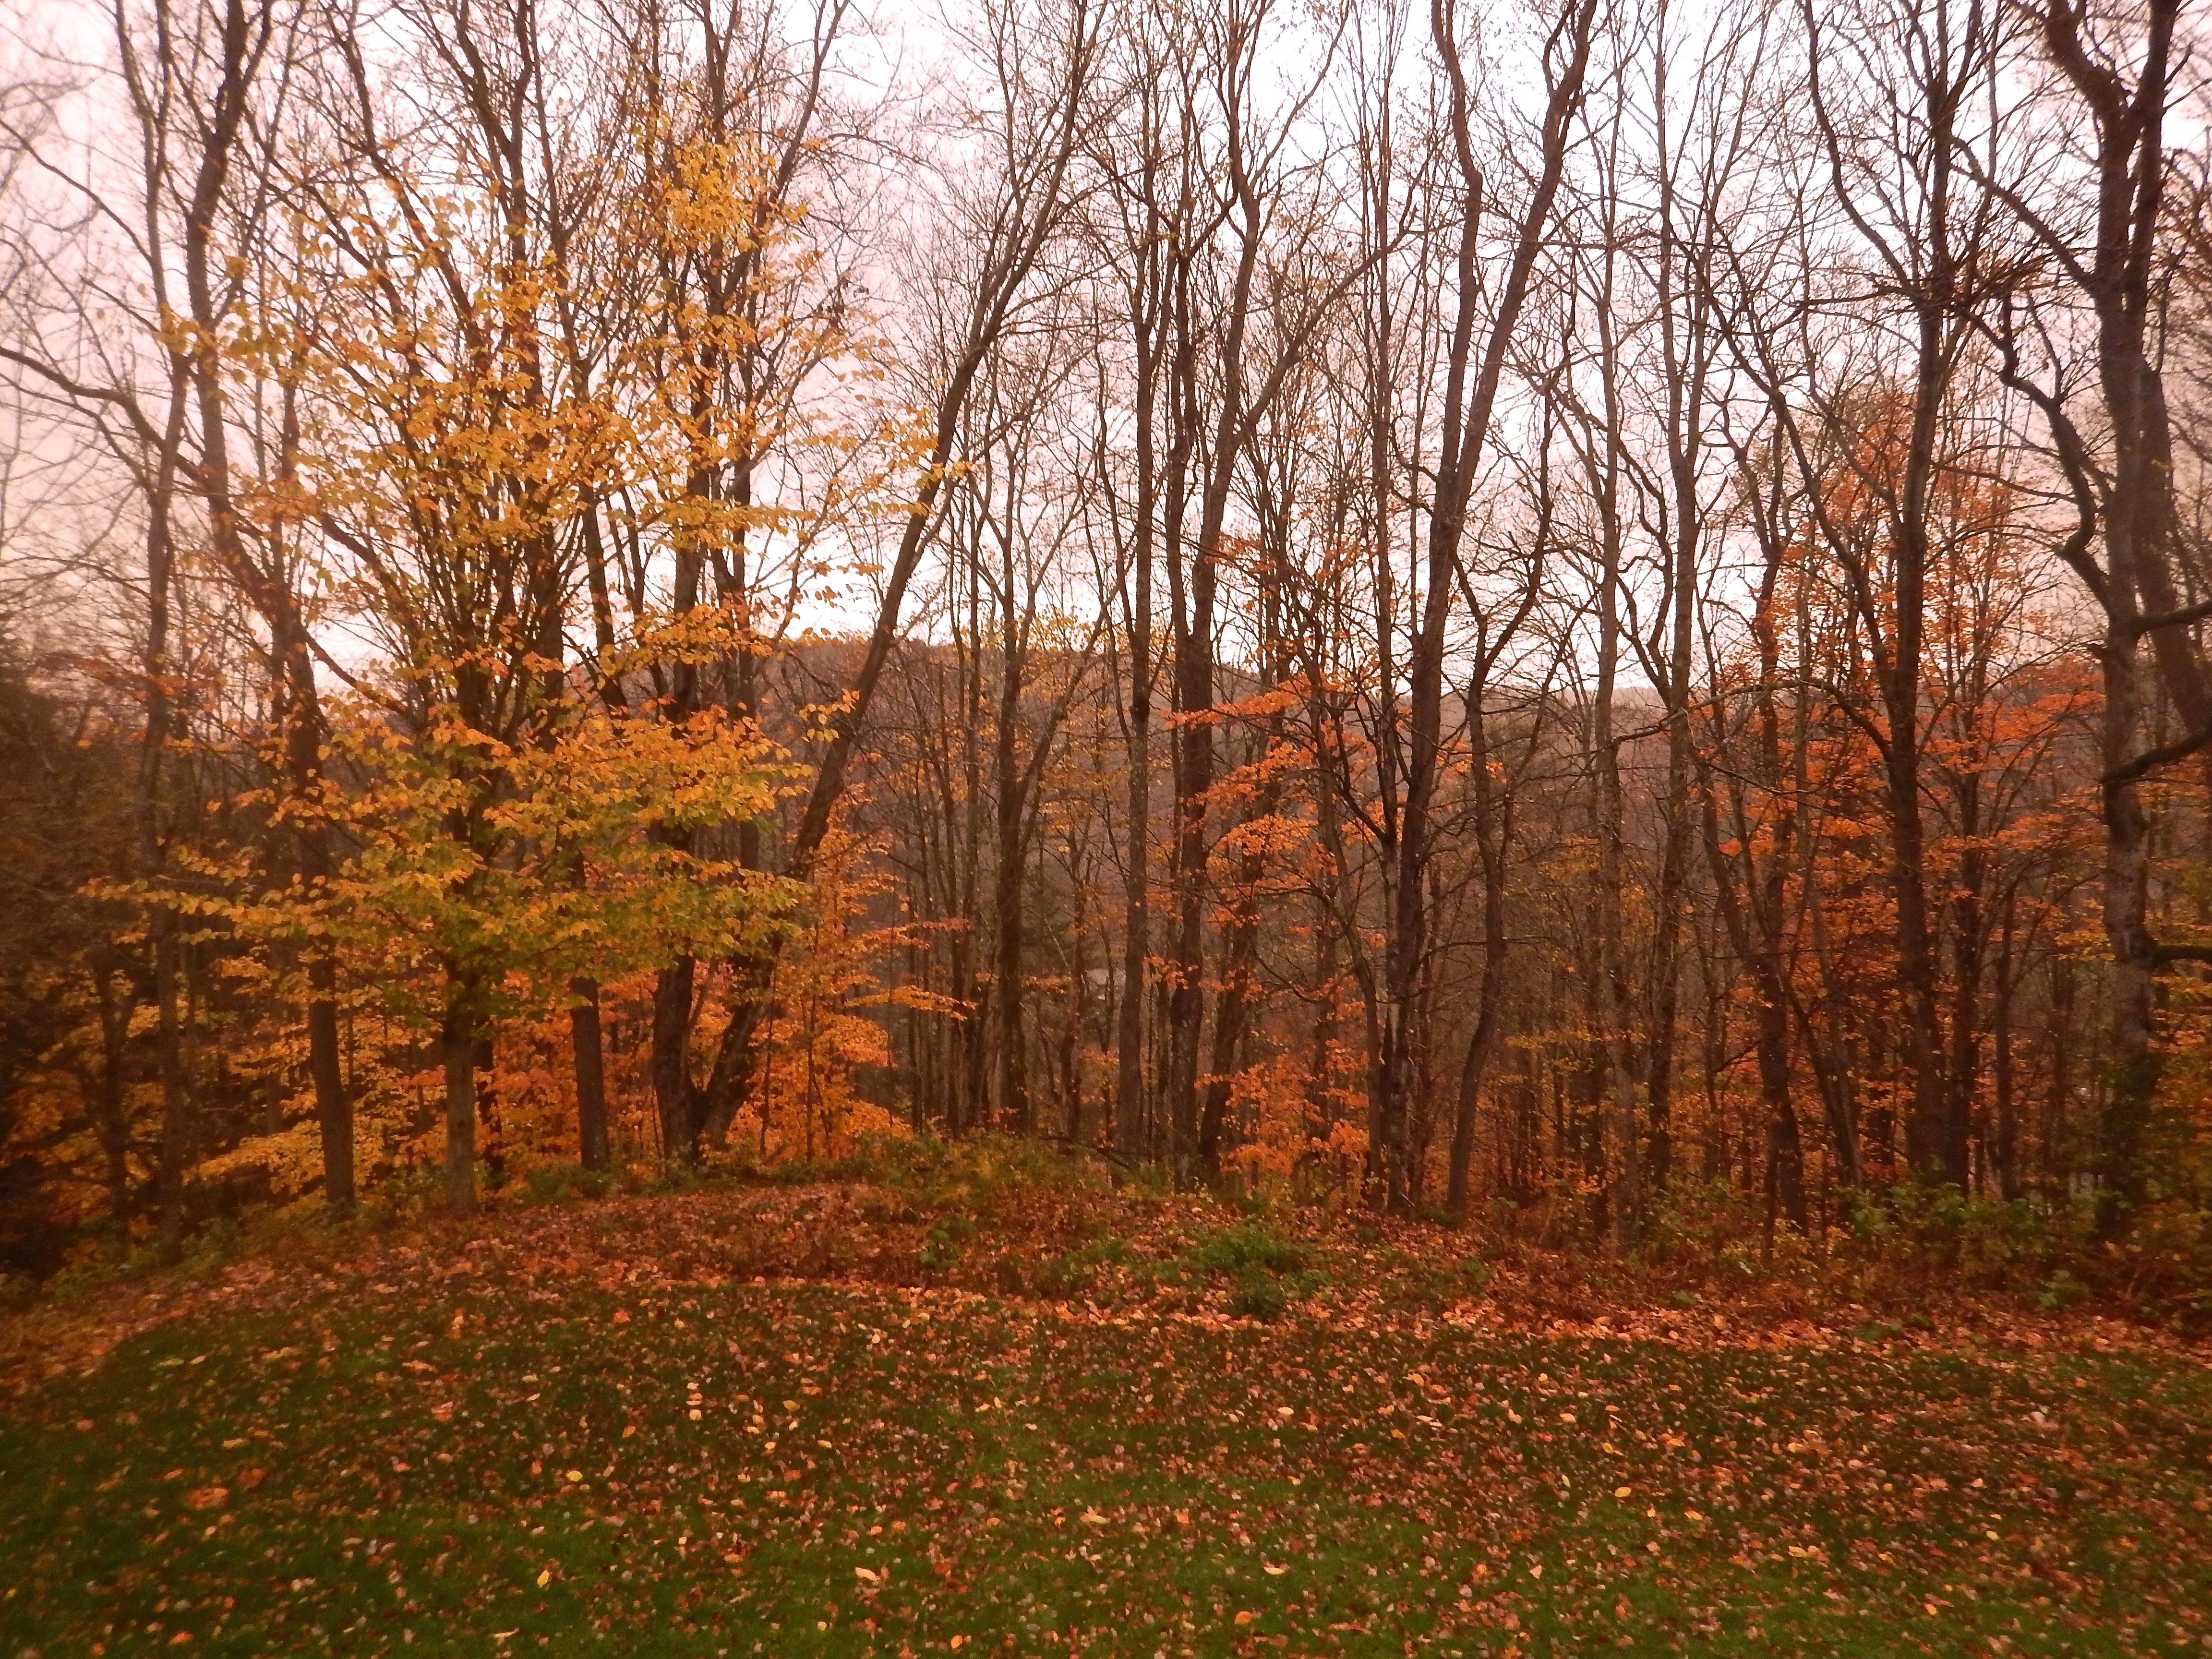 Caption: Late Autumn in VT